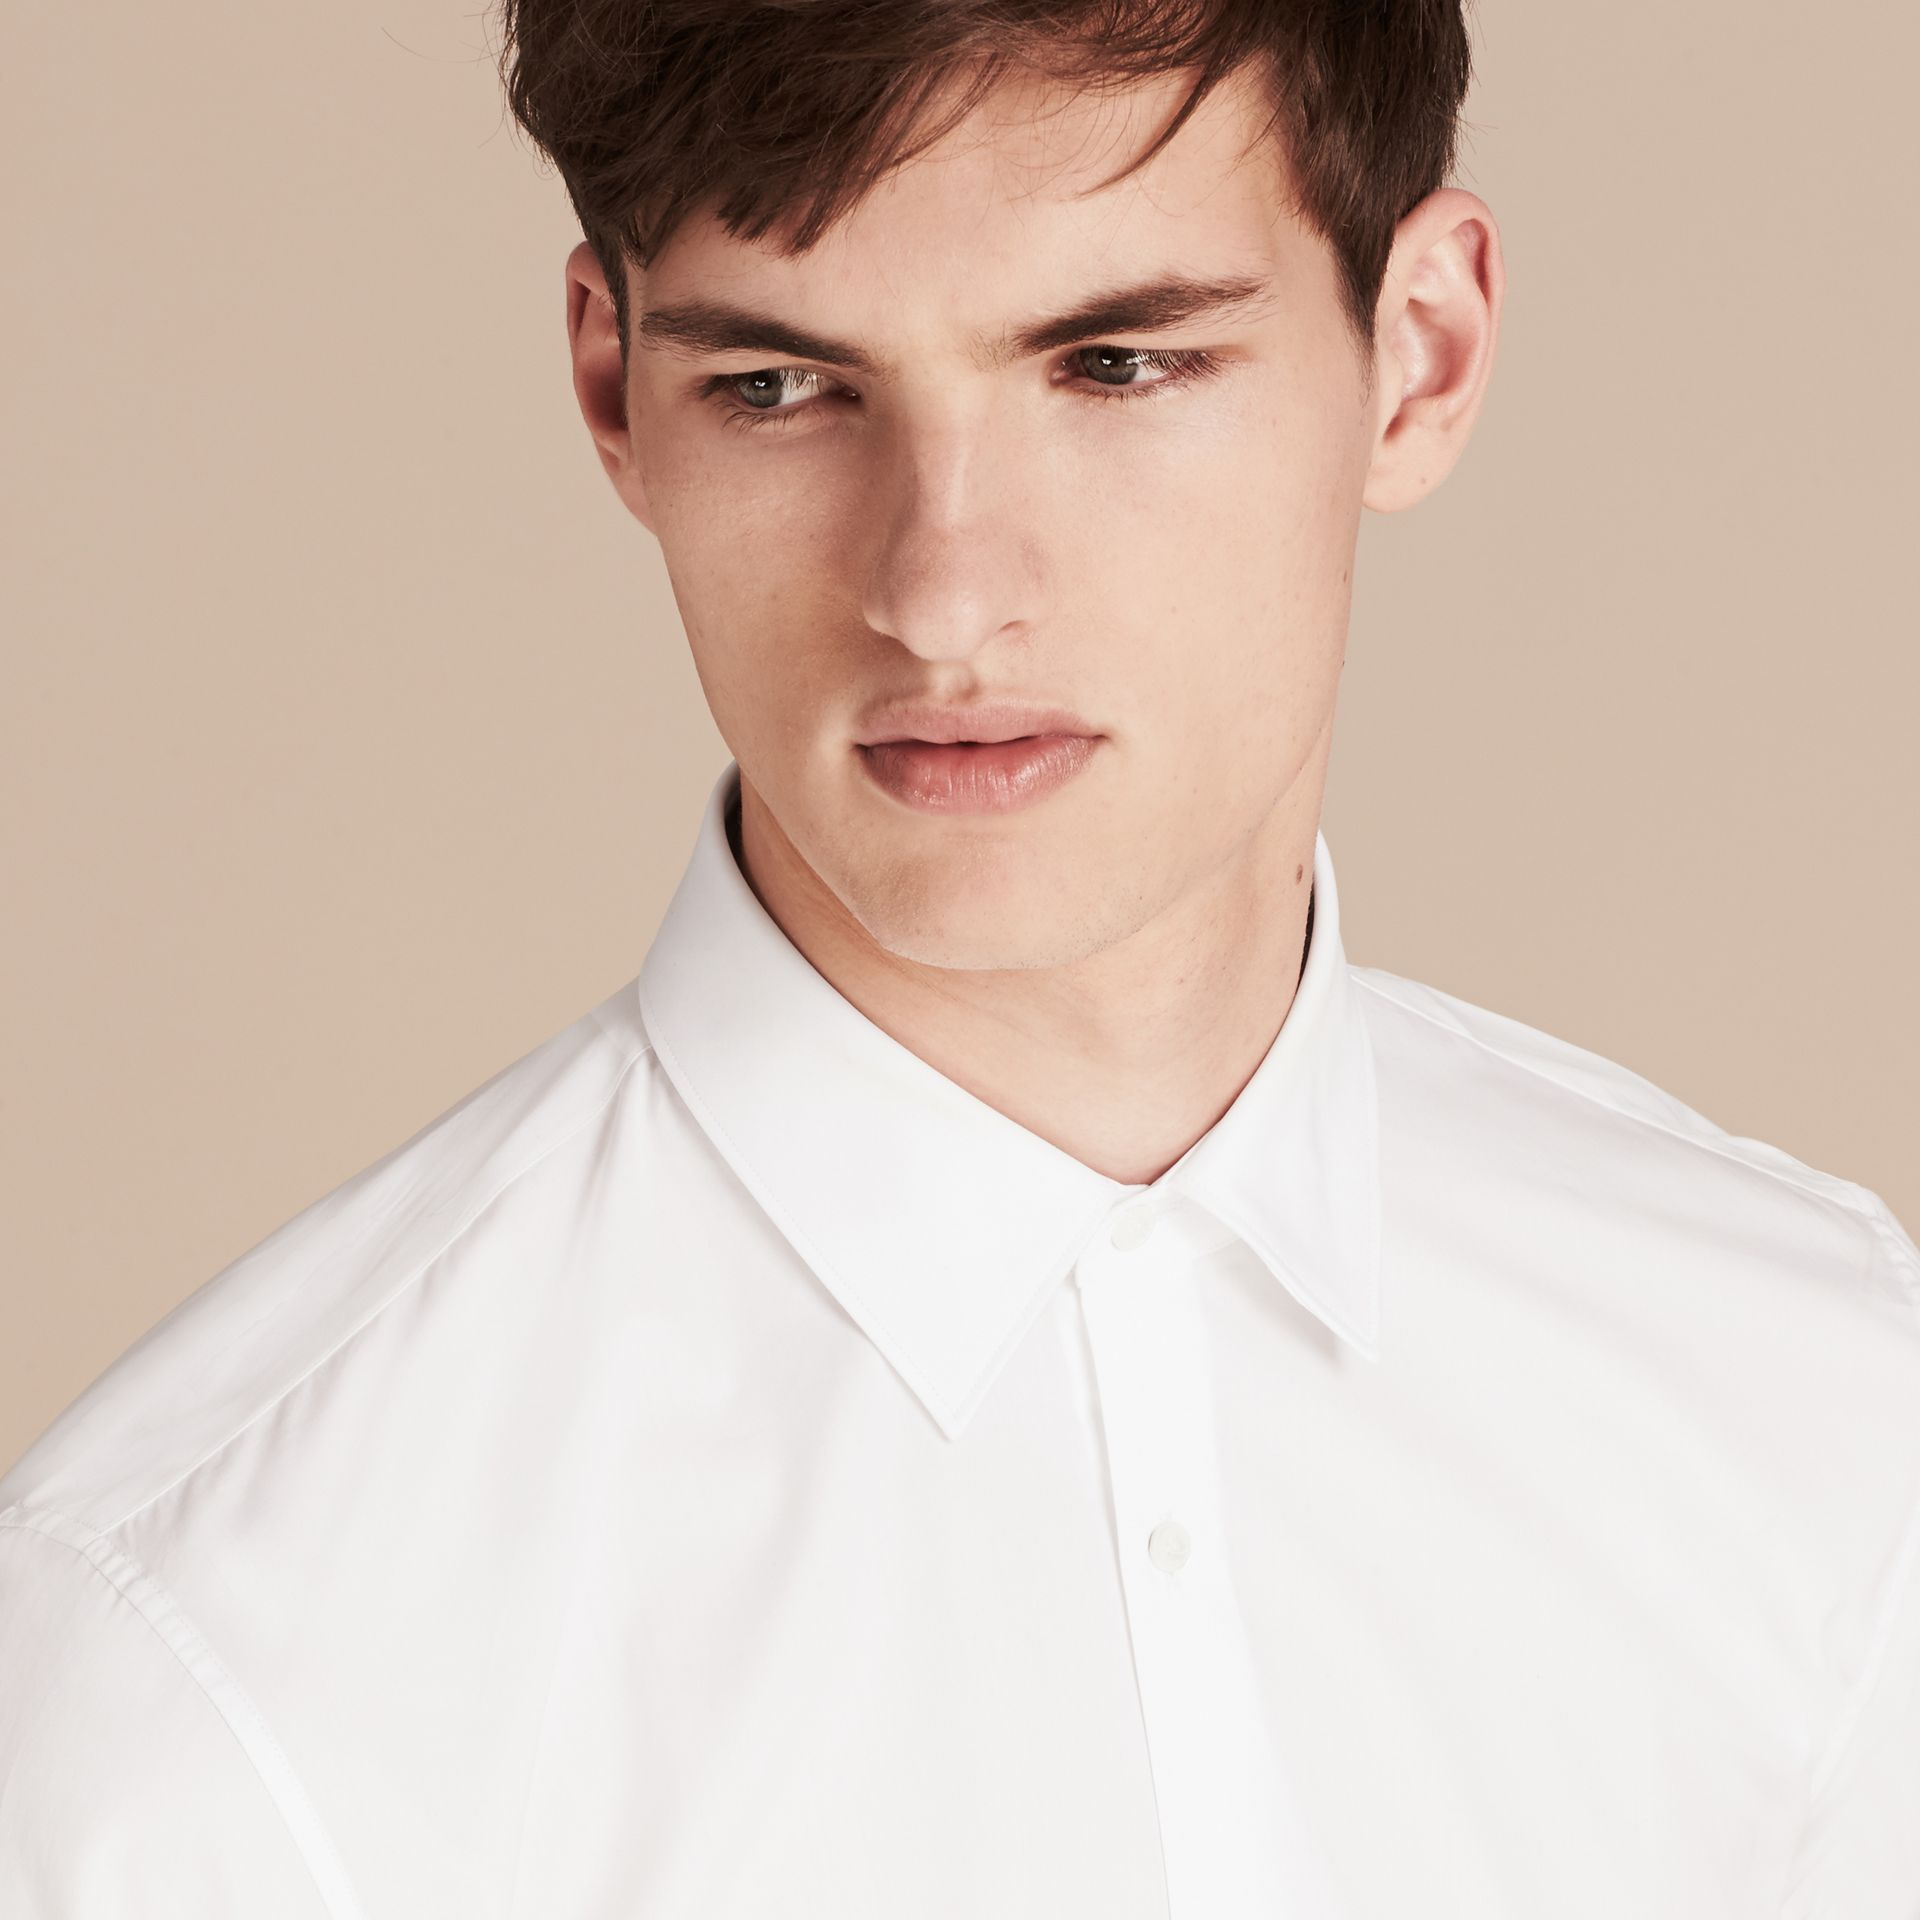 Modern Fit Cotton Poplin Shirt in White - Men | Burberry - gallery image 5